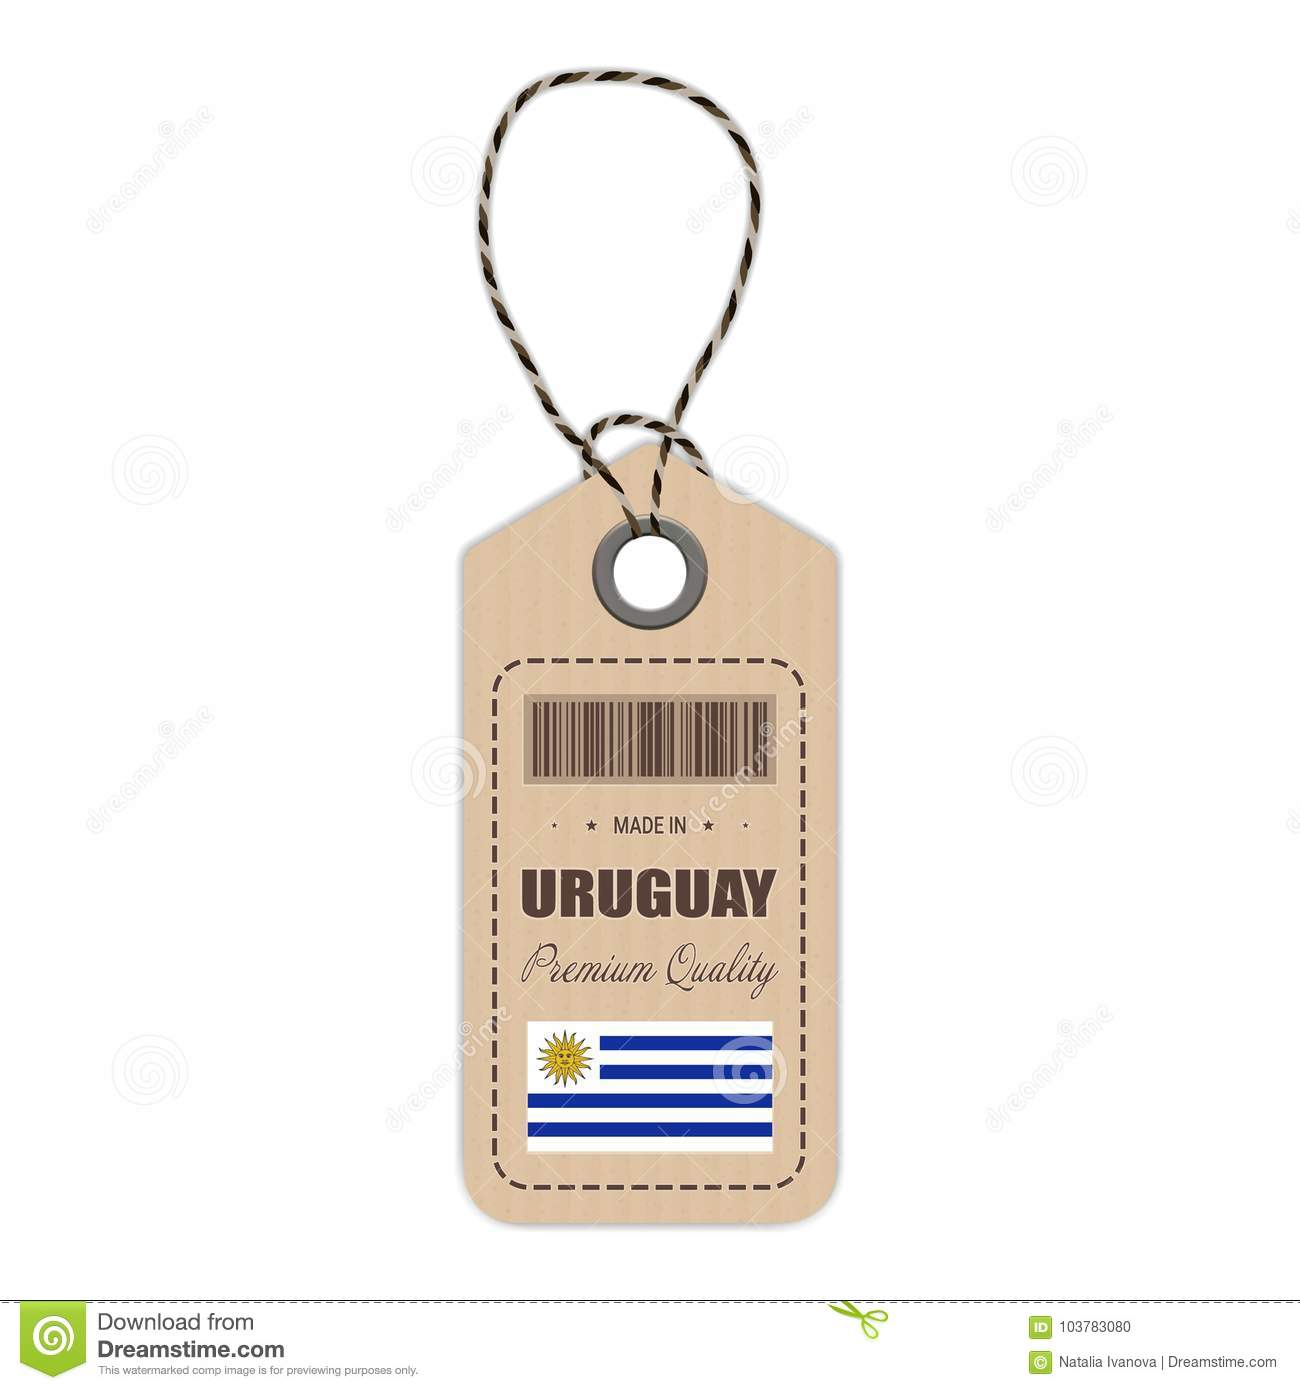 Hang Tag Made In Uruguay With Flag Icon Isolated On A White Background. Vector Illustration.